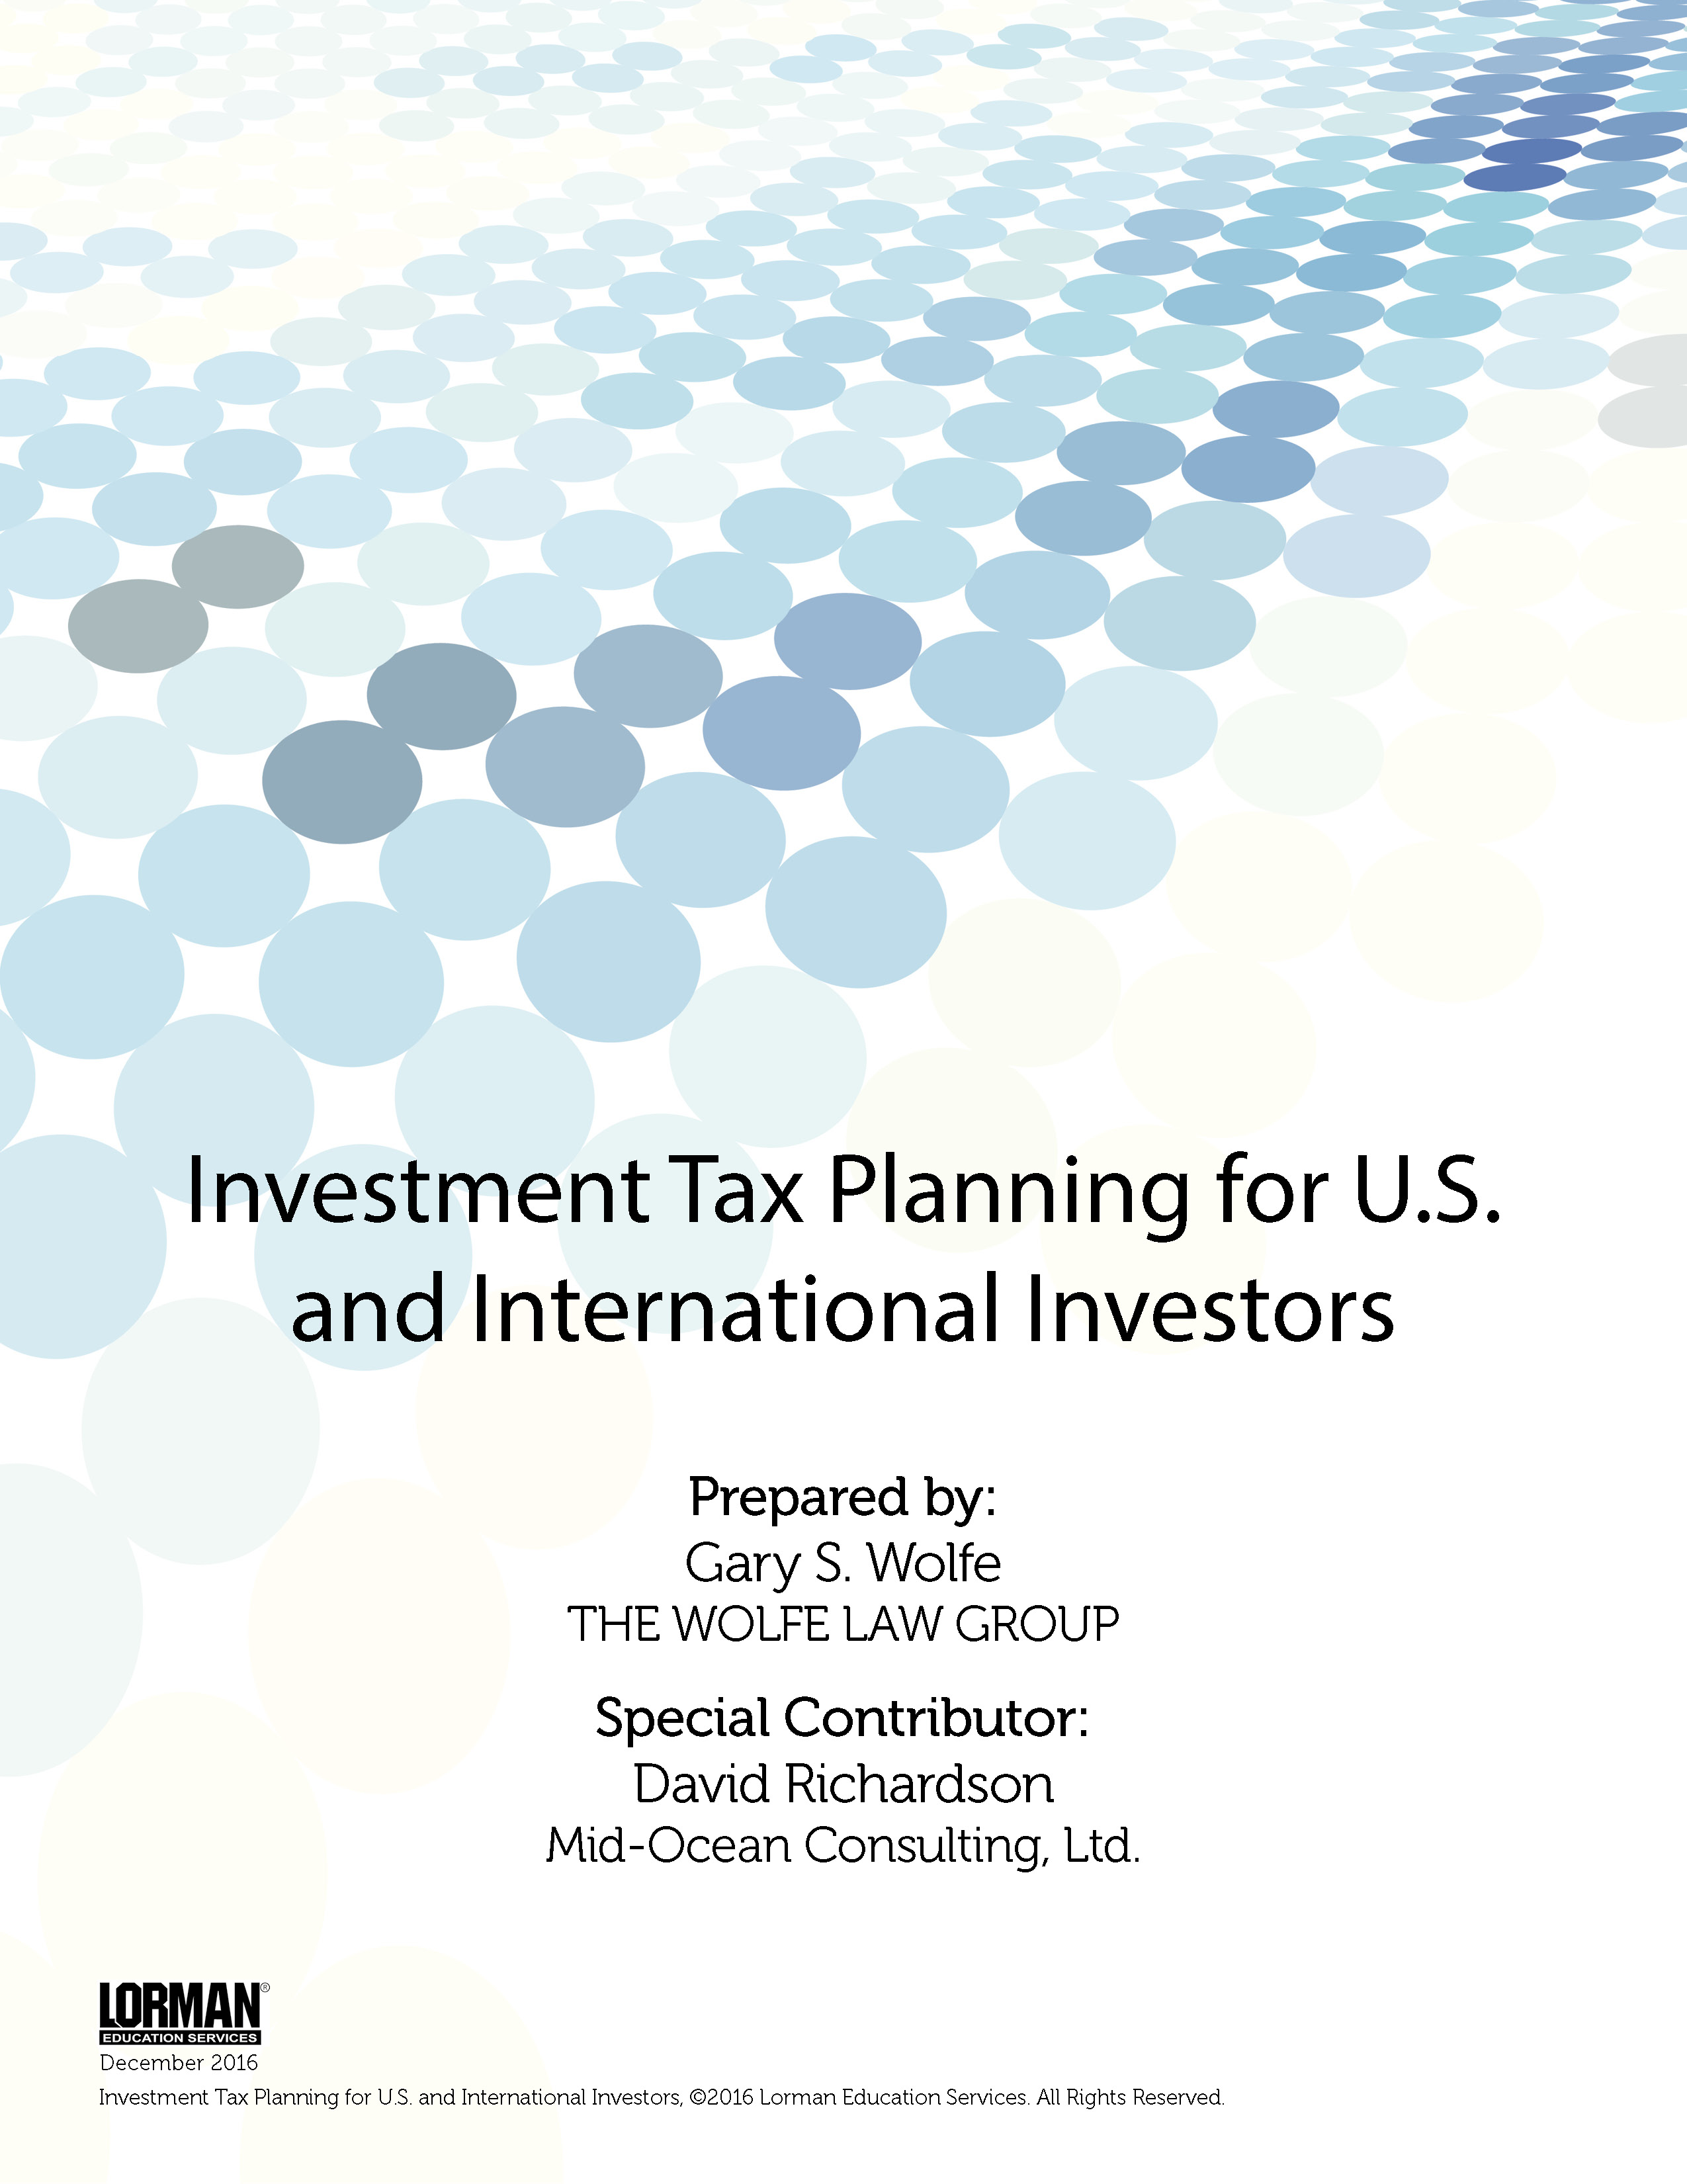 Investment Tax Planning for U.S. and International Investors